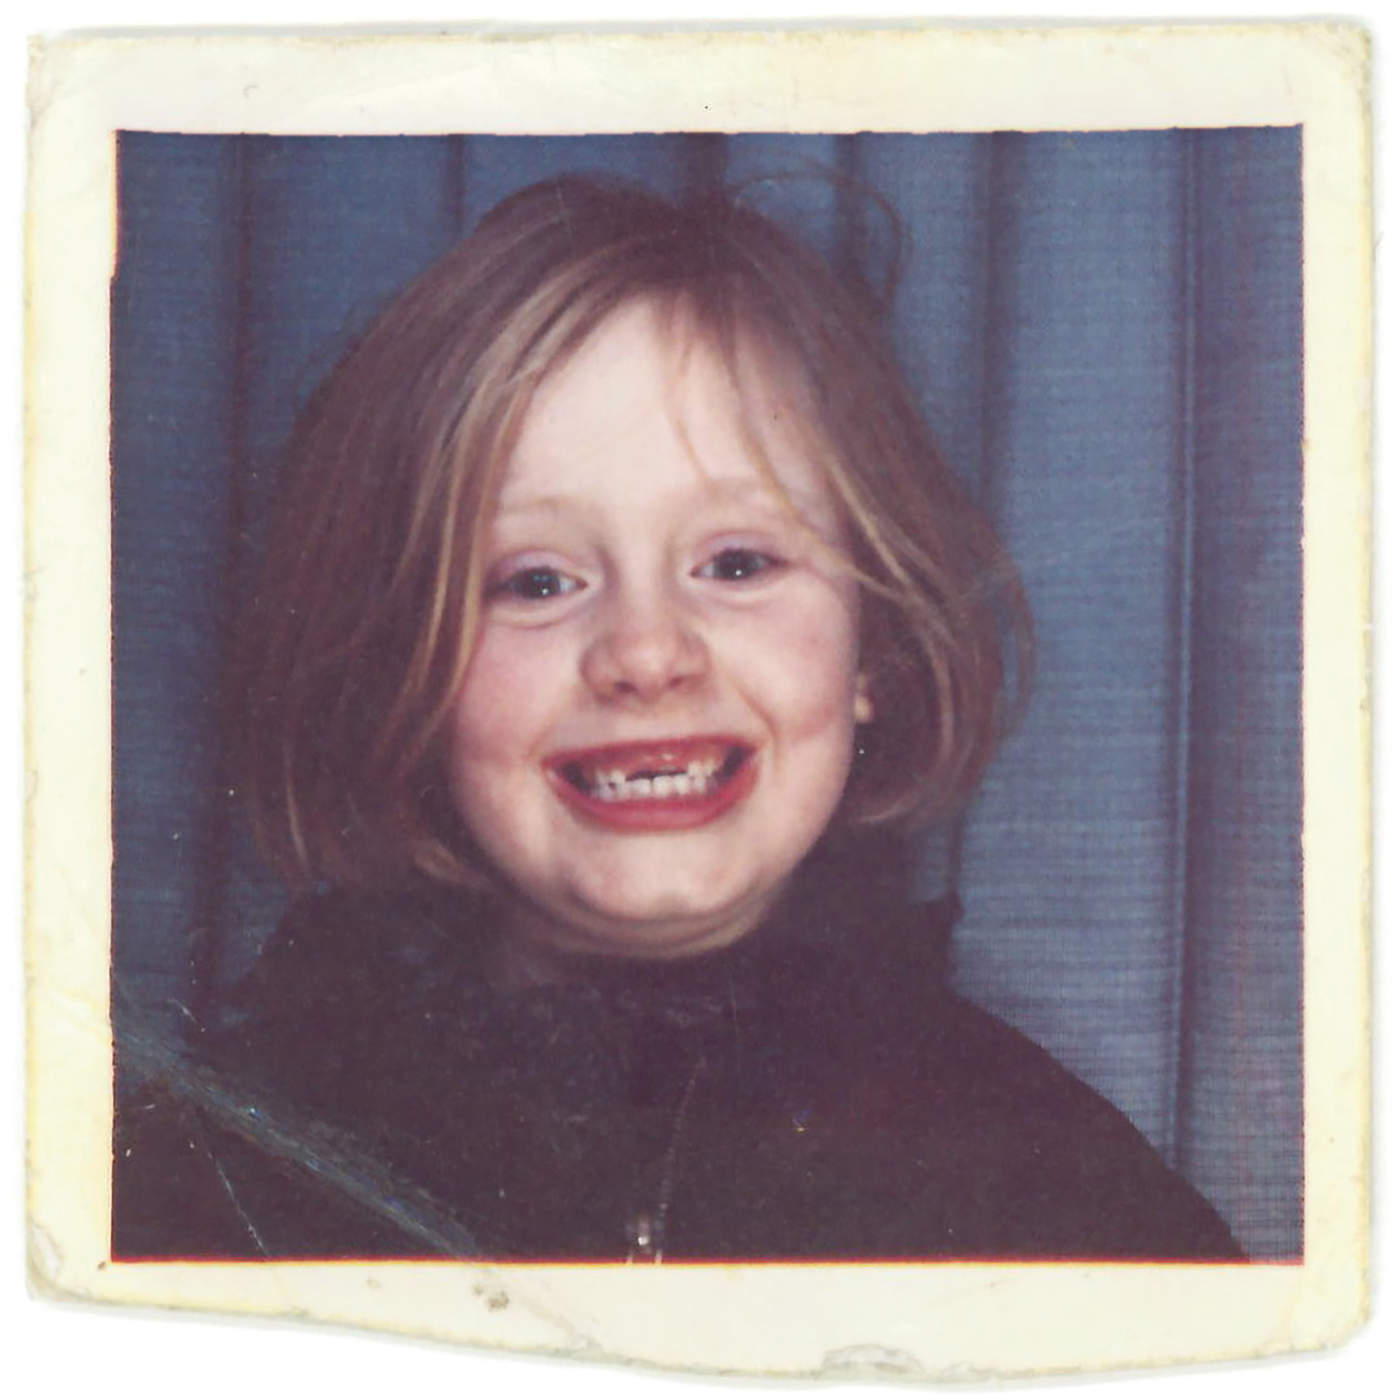 Adele - When We Were Young - Single Cover